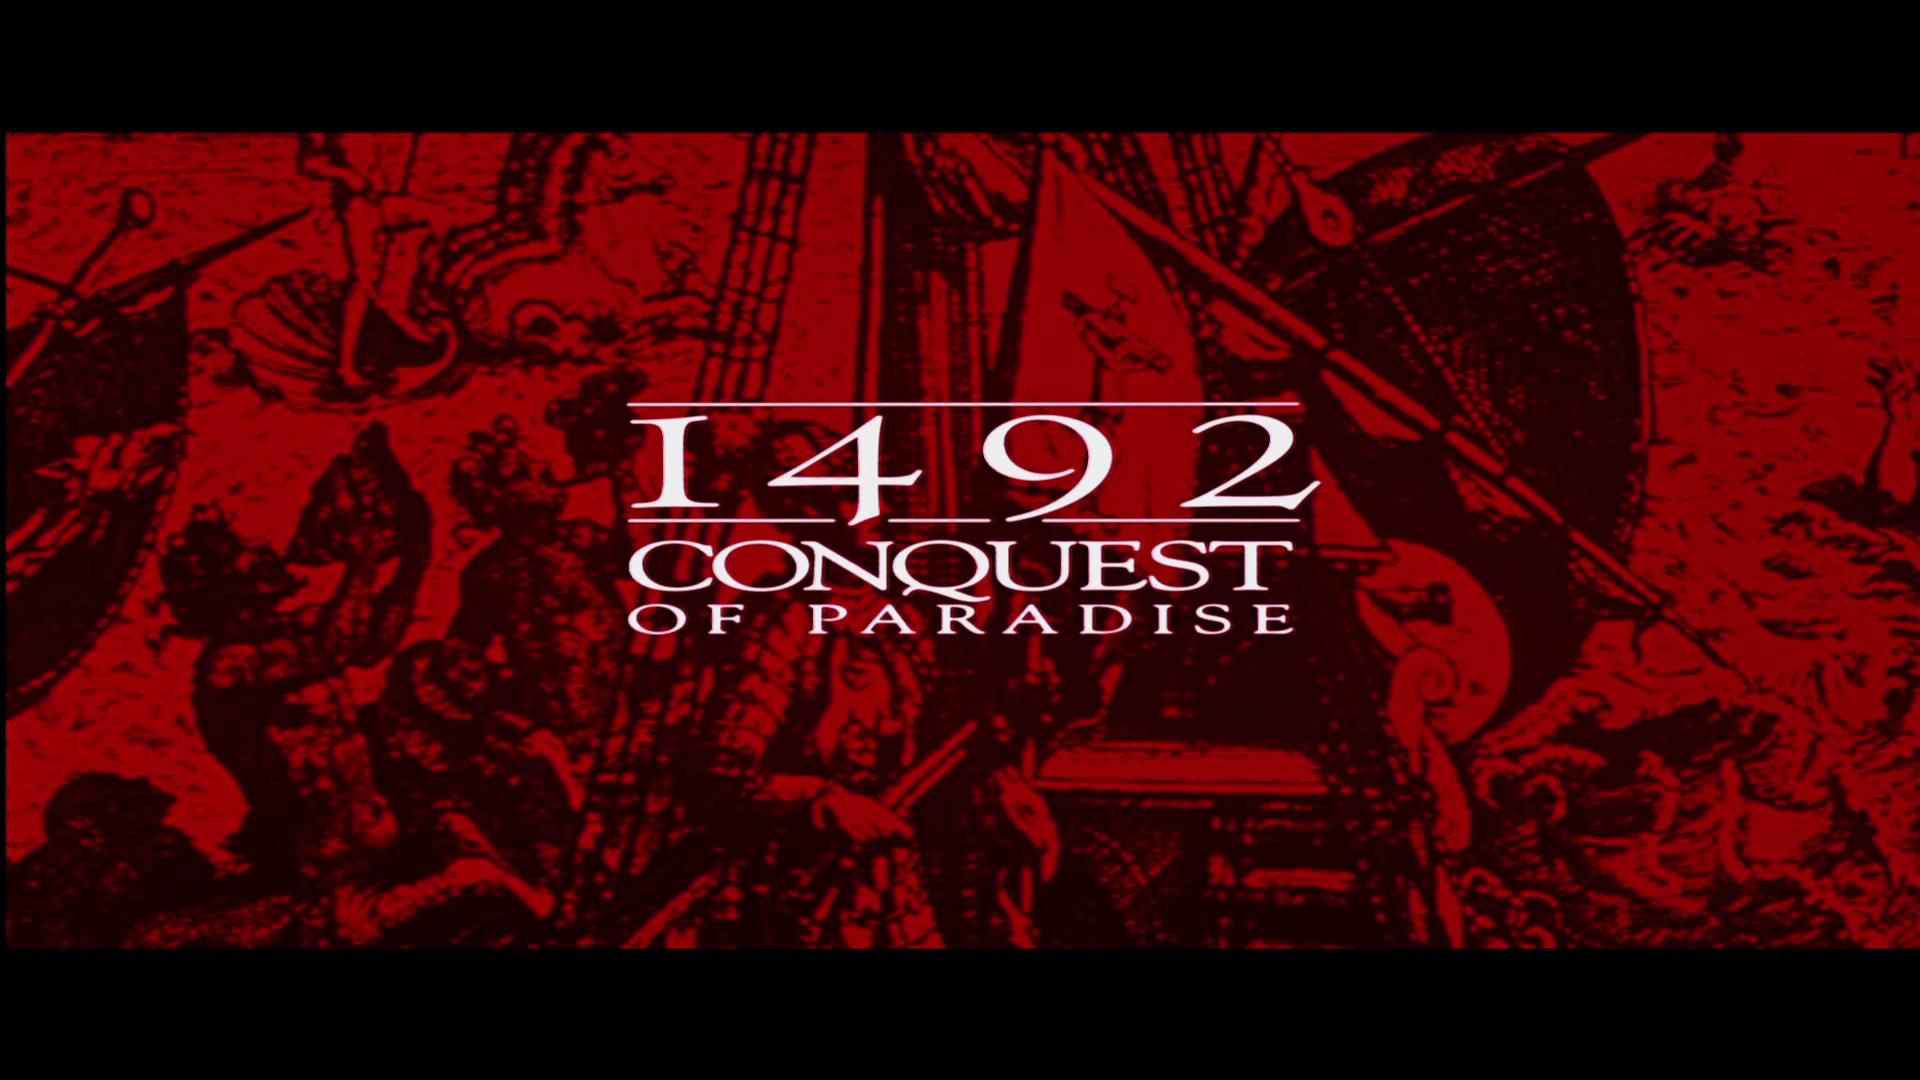 1492 conquest of paradise and 1492: conquest of paradise, 1992 directed by ridley scott starring g rard depardieu, armand assante, sigourney weaver, loren dean, and angela molina synopsis: 1492: conquest of paradise arrives on blu-ray in north america in a release that features some deleted scenes and a commentary track.